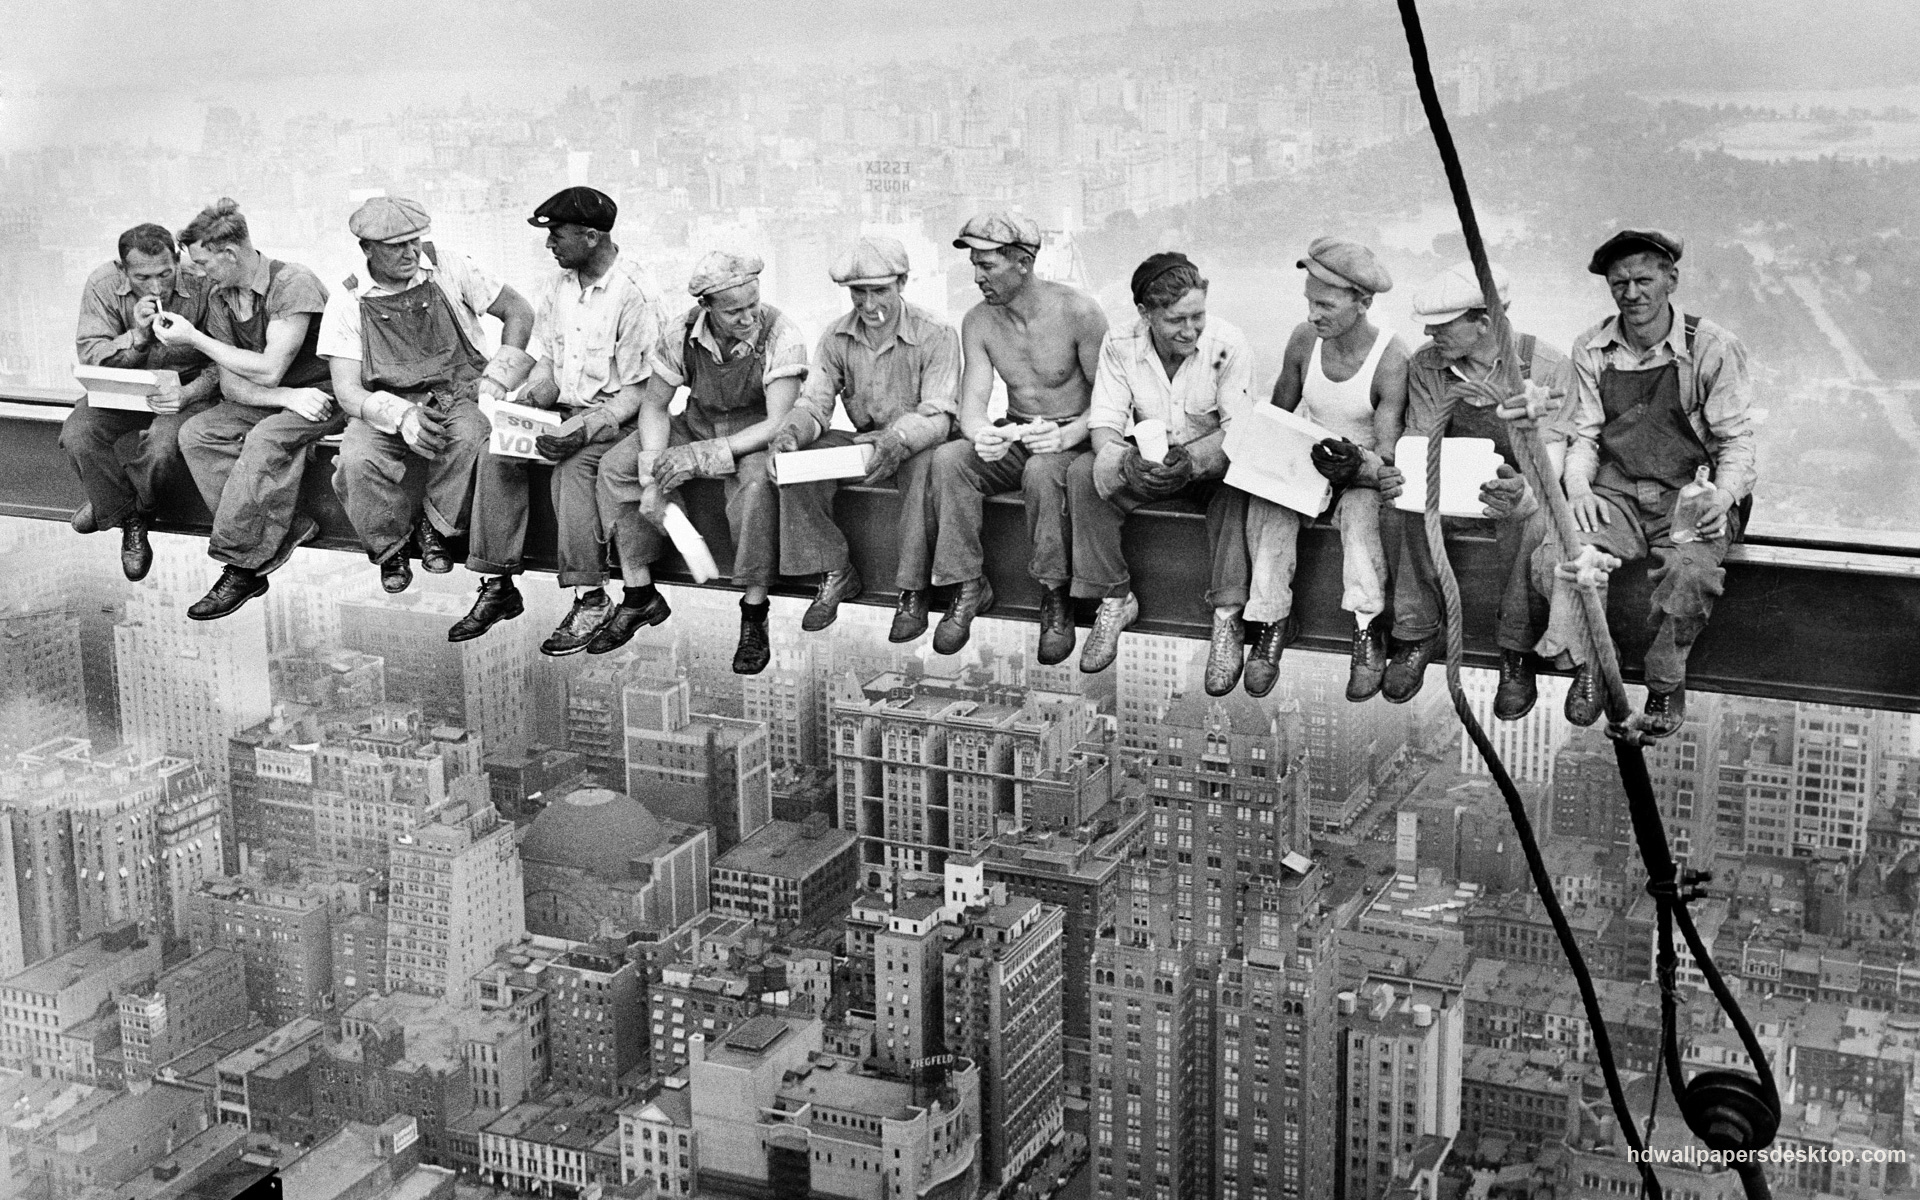 Charles C. Ebbets - Lunch atop a Skyscraper - New York, U.S.A. (1932) most iconic cult photos le foto più cult e famose cultstories cultgalleries